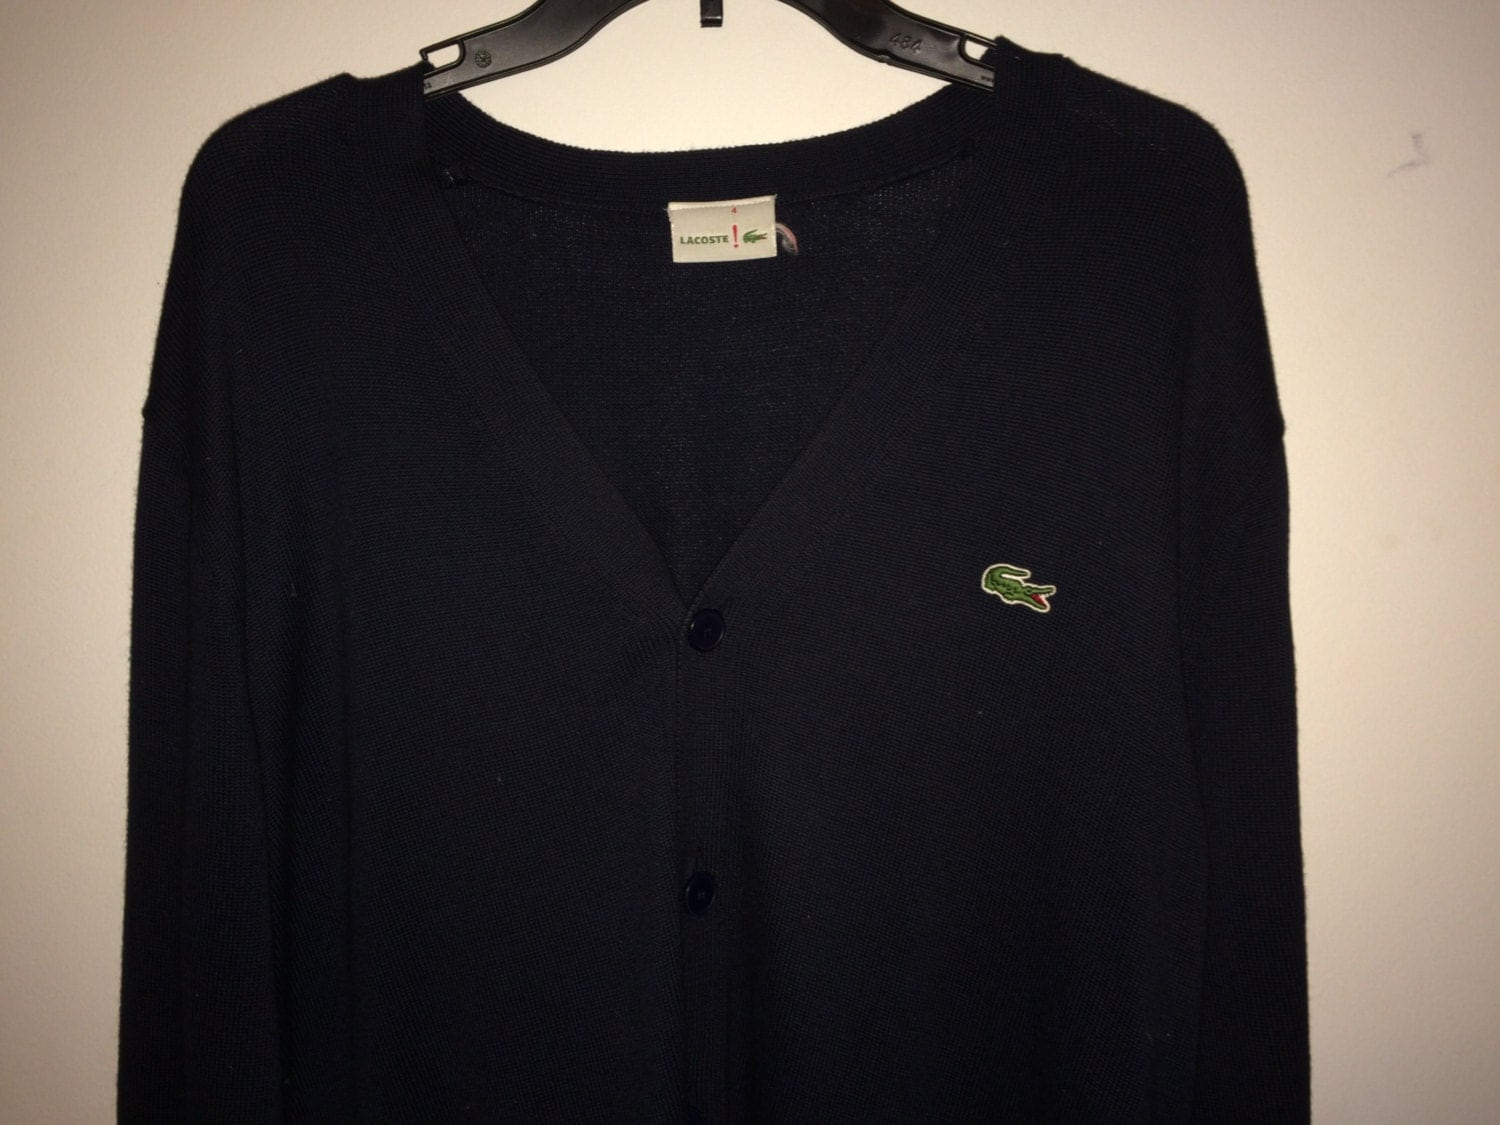 sale euc lacoste cardigan casual sweater sweatshirt by casualisme. Black Bedroom Furniture Sets. Home Design Ideas